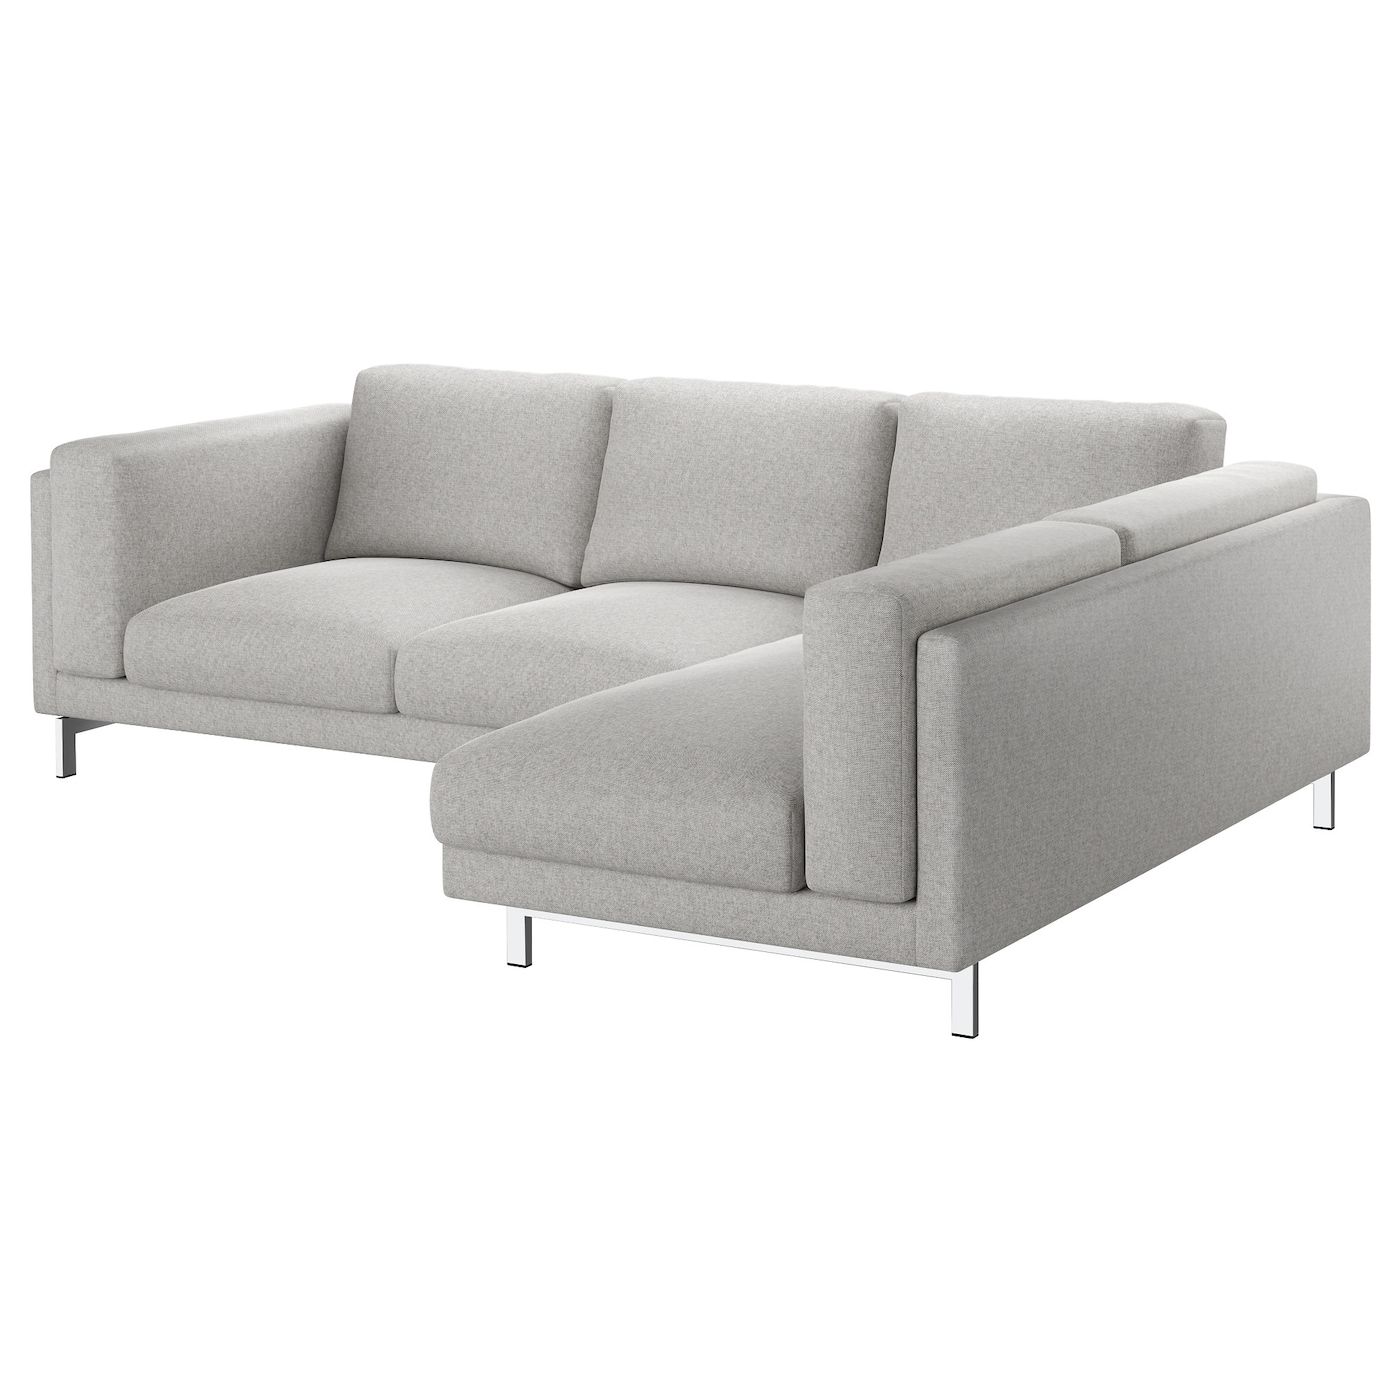 Nockeby two seat sofa w chaise longue right tallmyra white for Chaise longue furniture